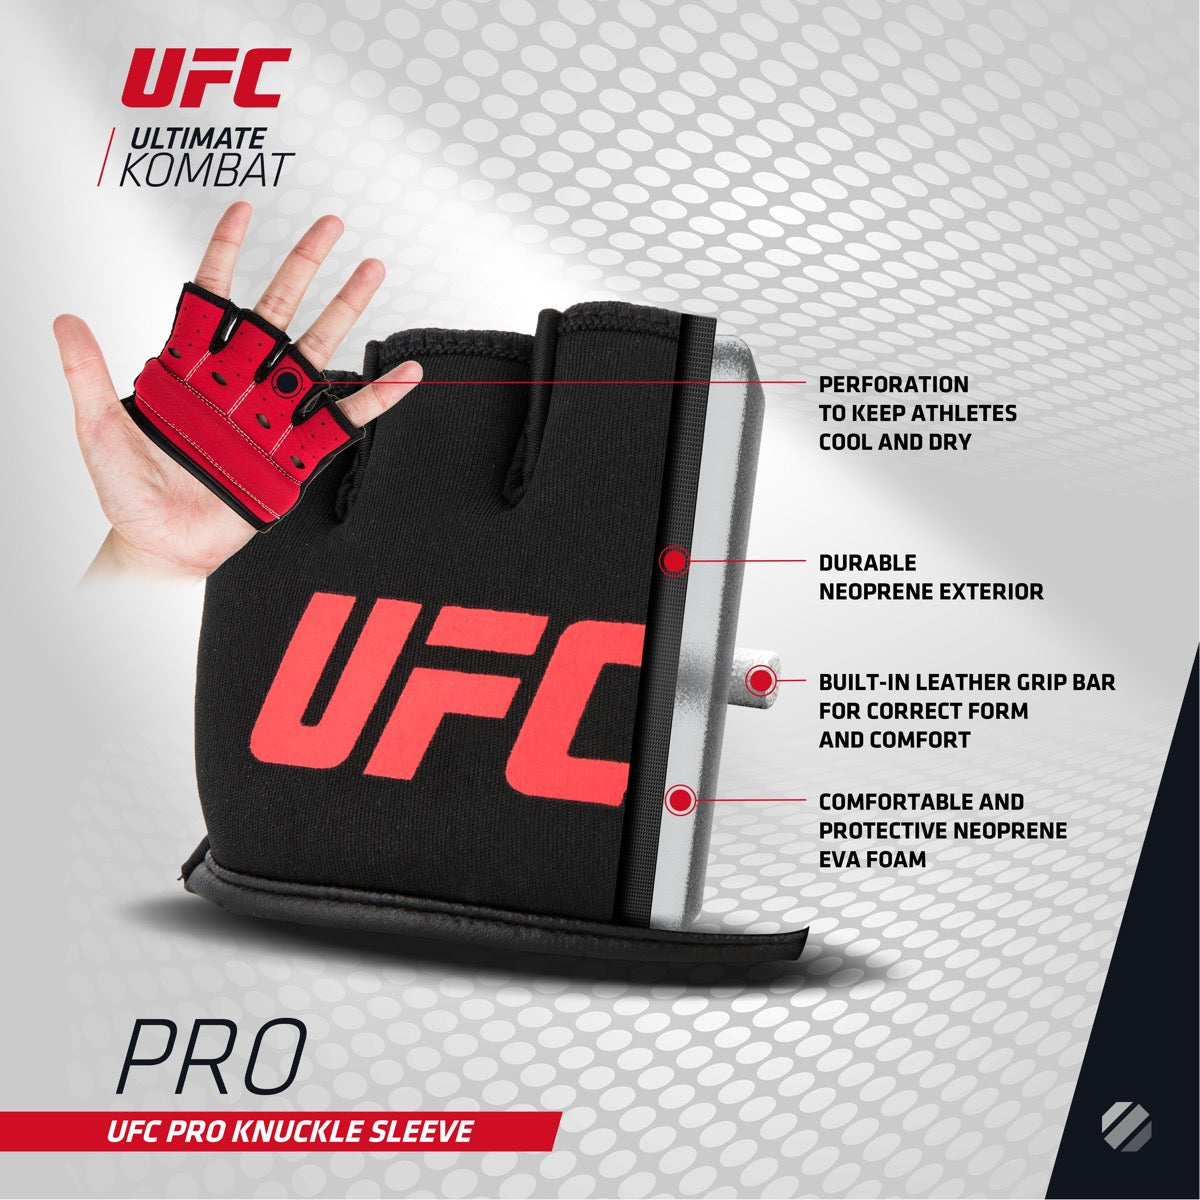 Cutaway image of UFC Pro Knuckle Sleeve with features listed